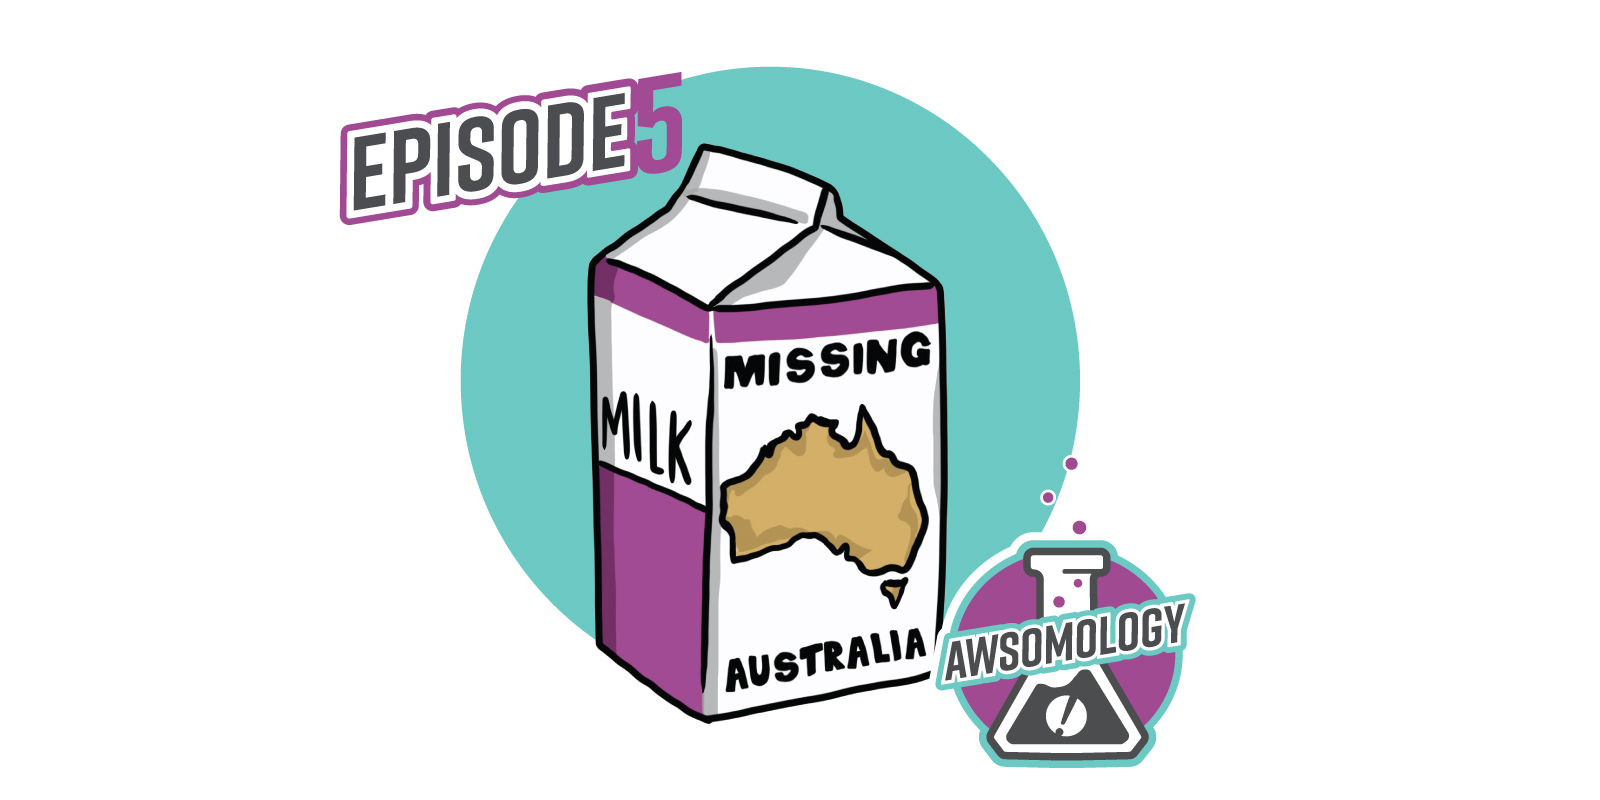 Illustration of Australia in a Missing Ad on a Milk Carton